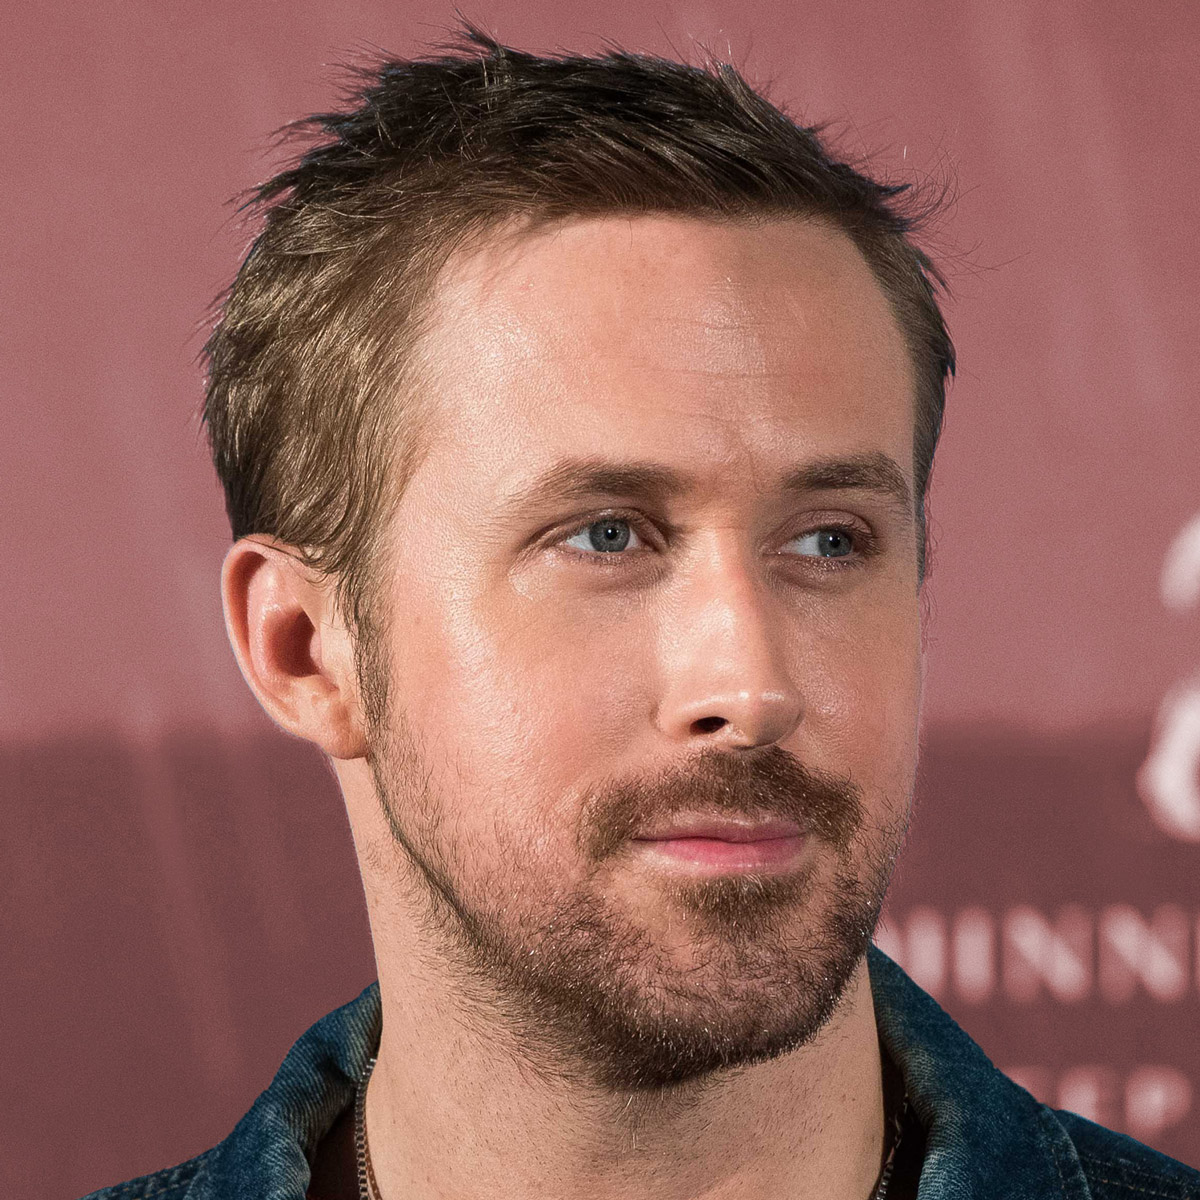 The Ryan Gosling Blade Runner 2049 Haircut